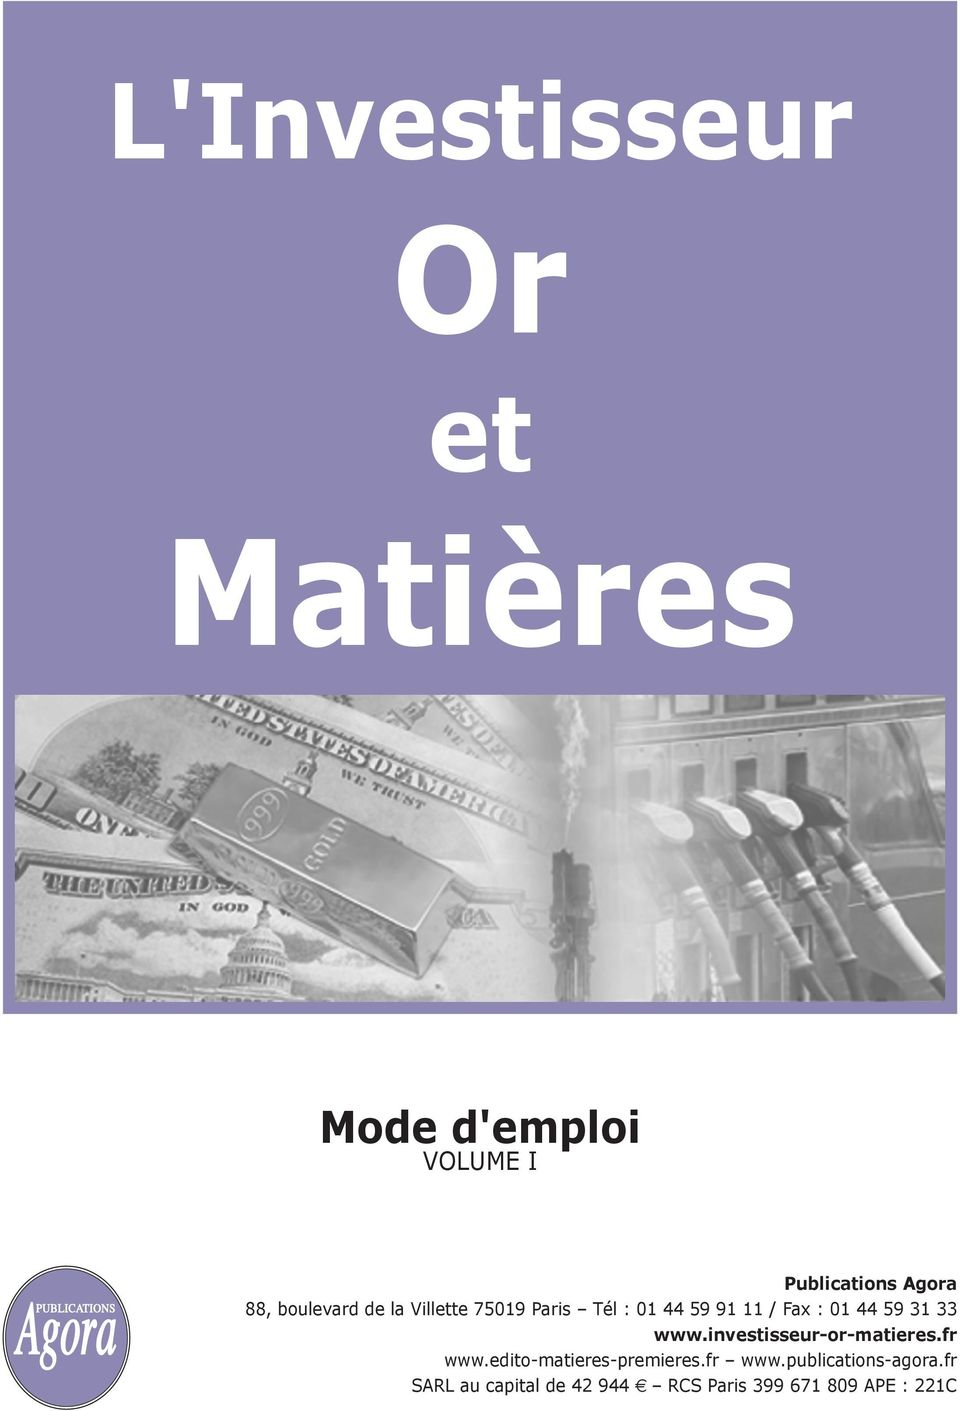 31 33 www.investisseur-or-matieres.fr www.edito-matieres-premieres.fr www.publications-agora.